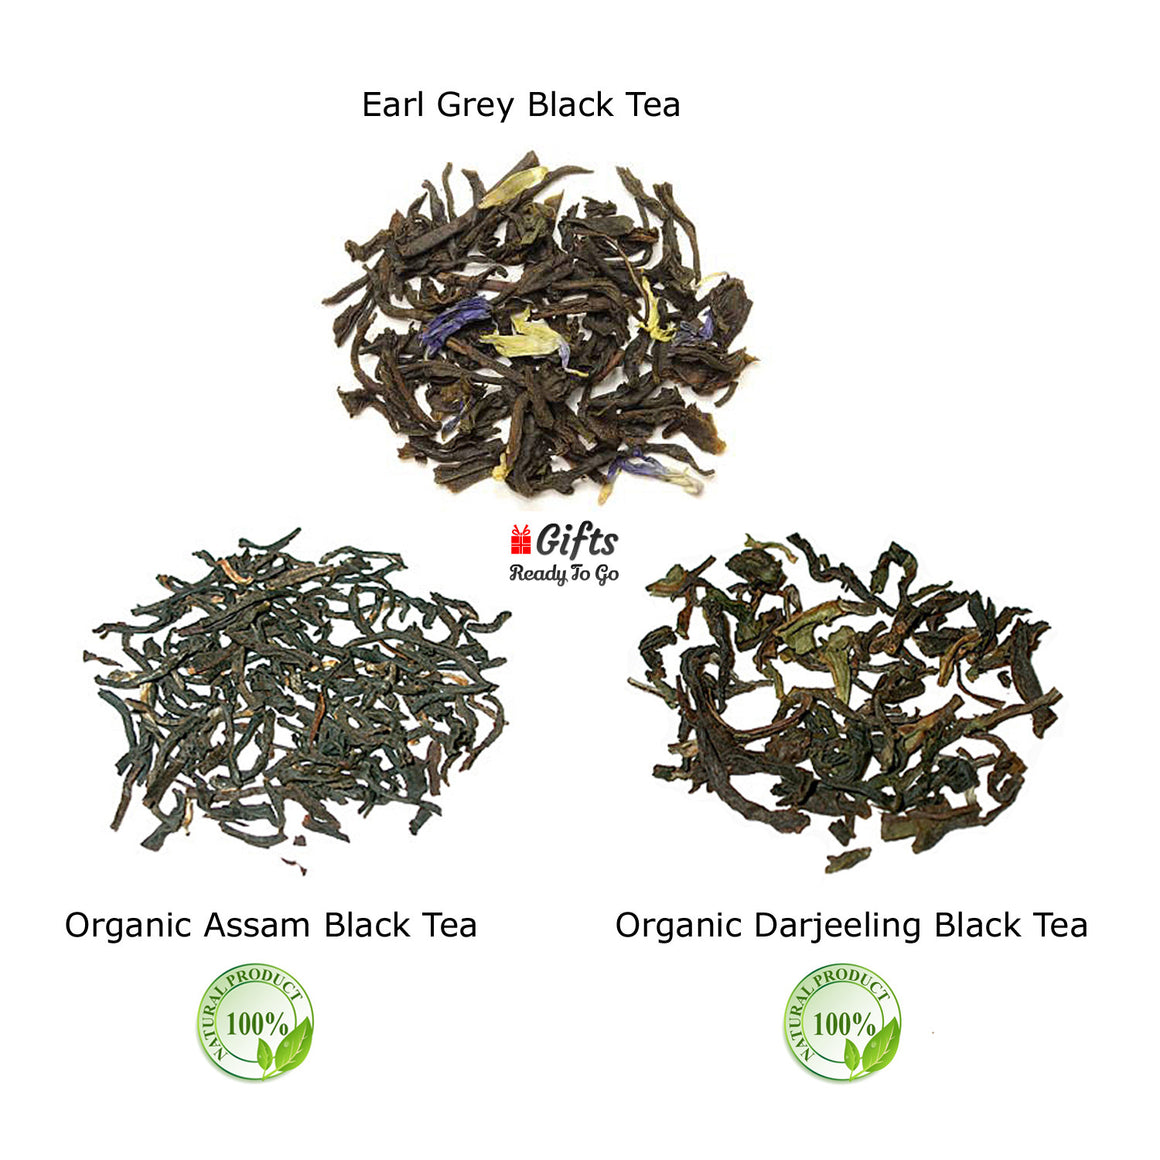 Set 1 Black Tea Collection